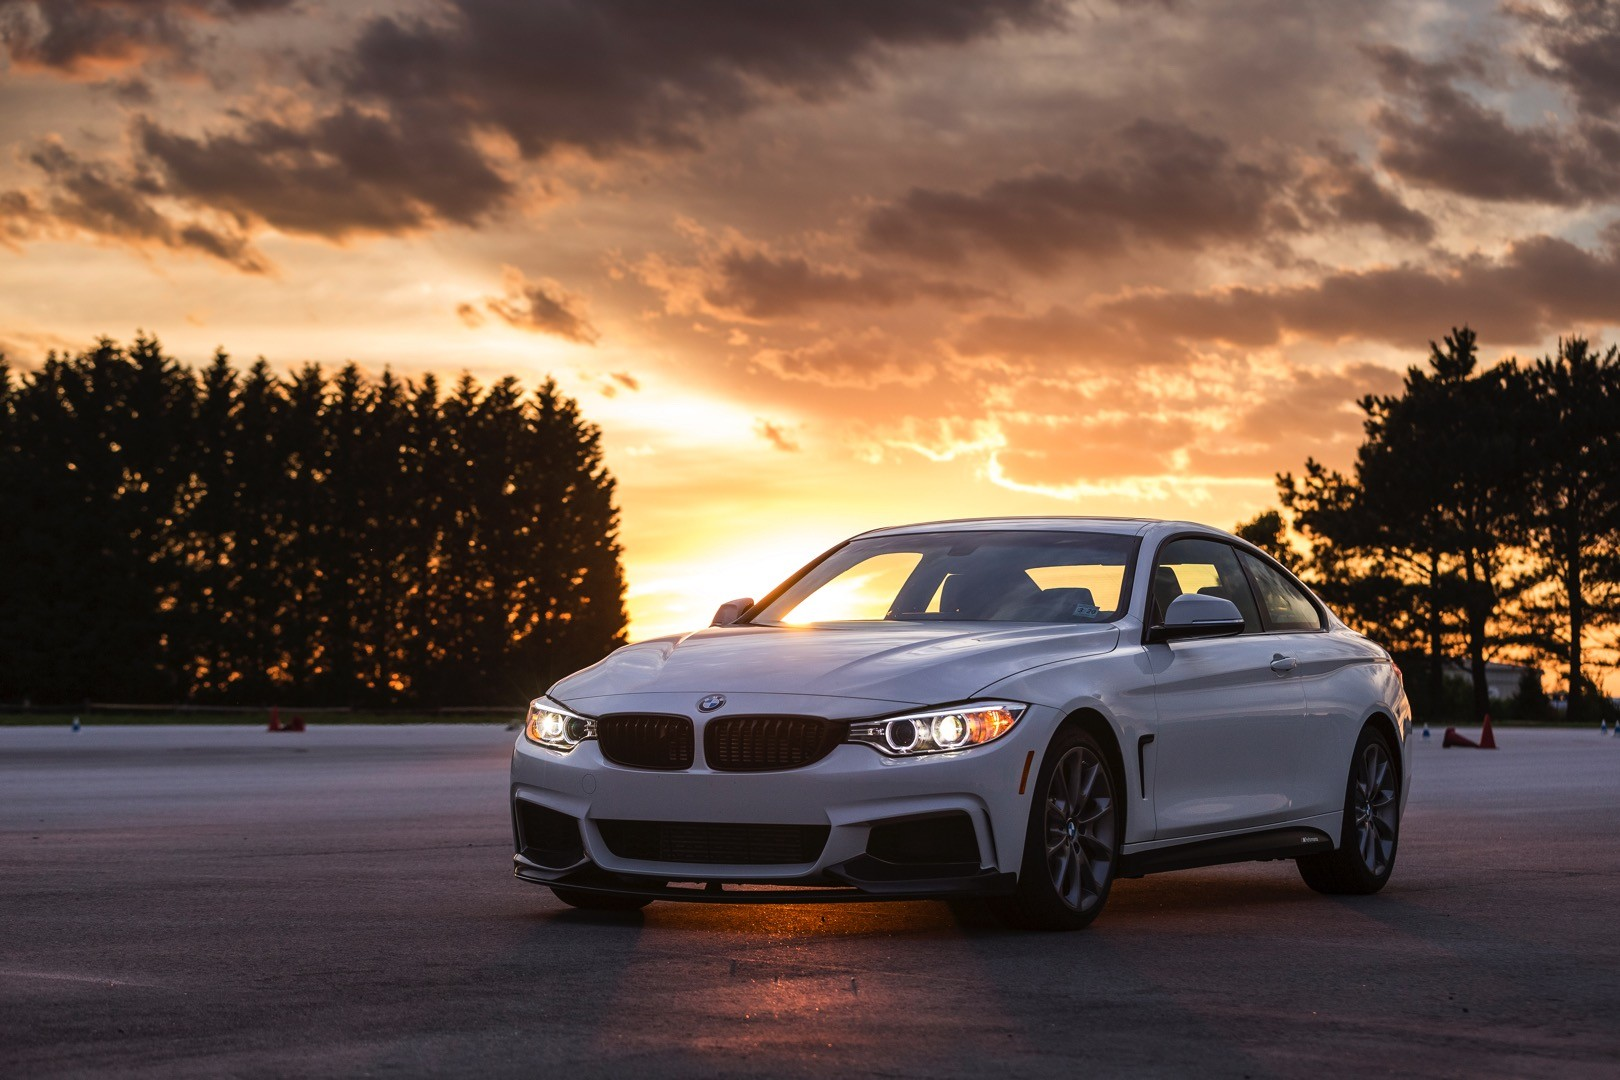 Bmw 435i Zhp Coupe Unveiled Limited To 100 Units